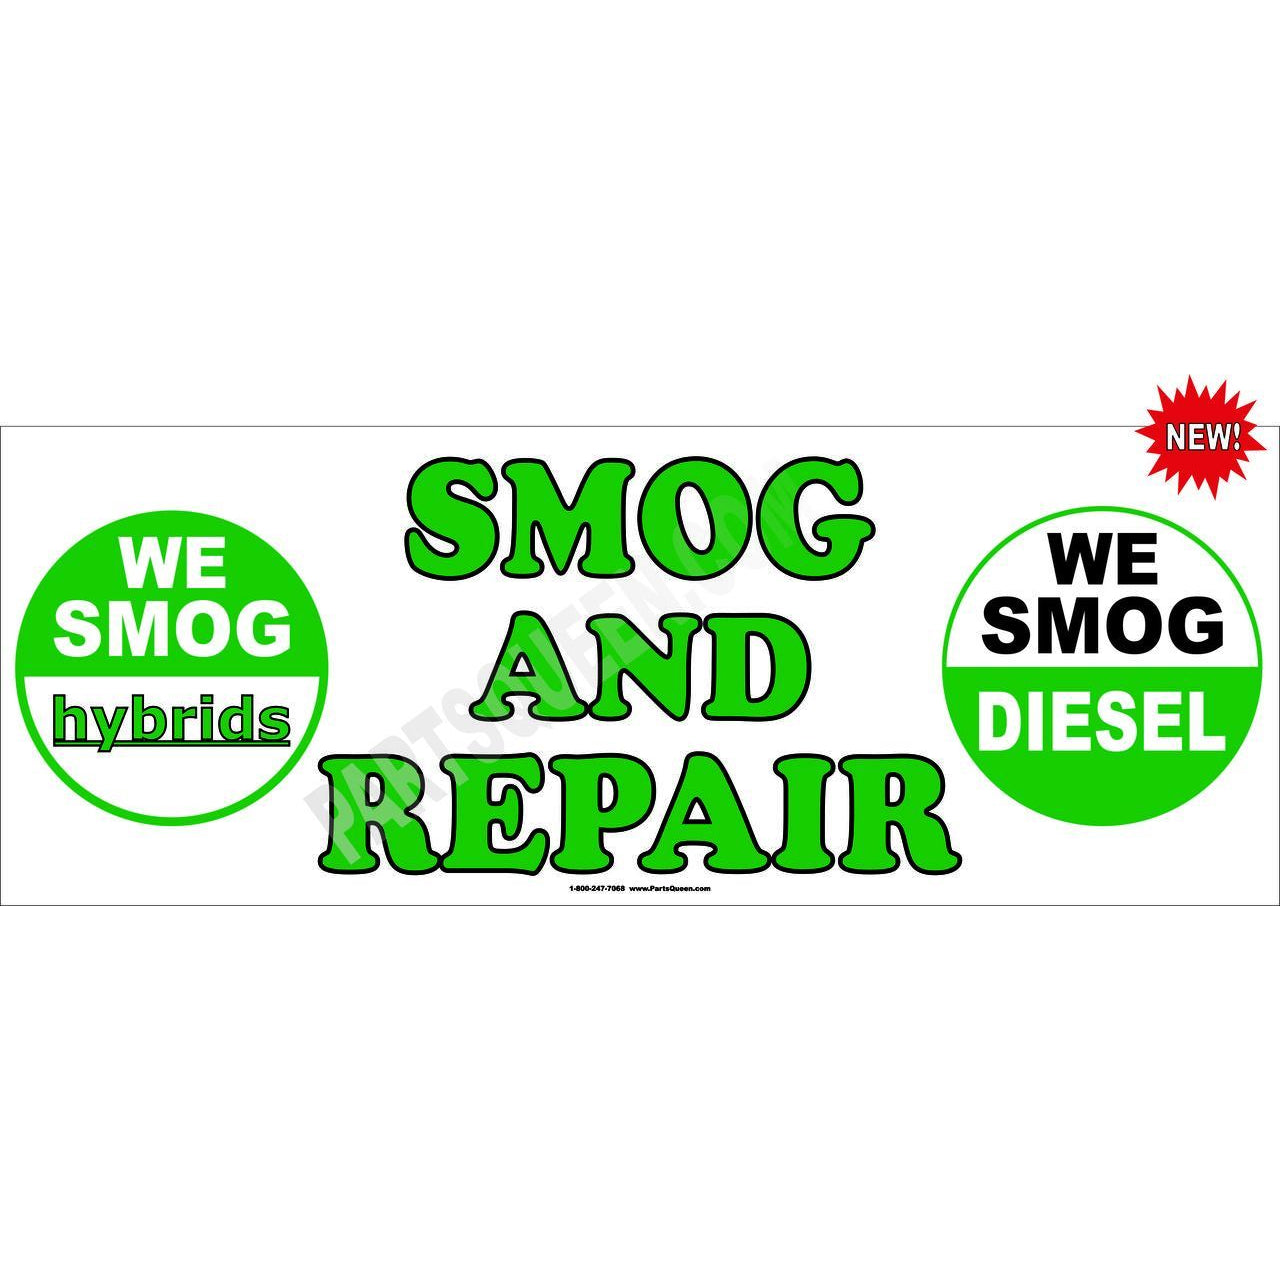 DIESEL & HYBRID SMOG AND REPAIR BANNER # SB02